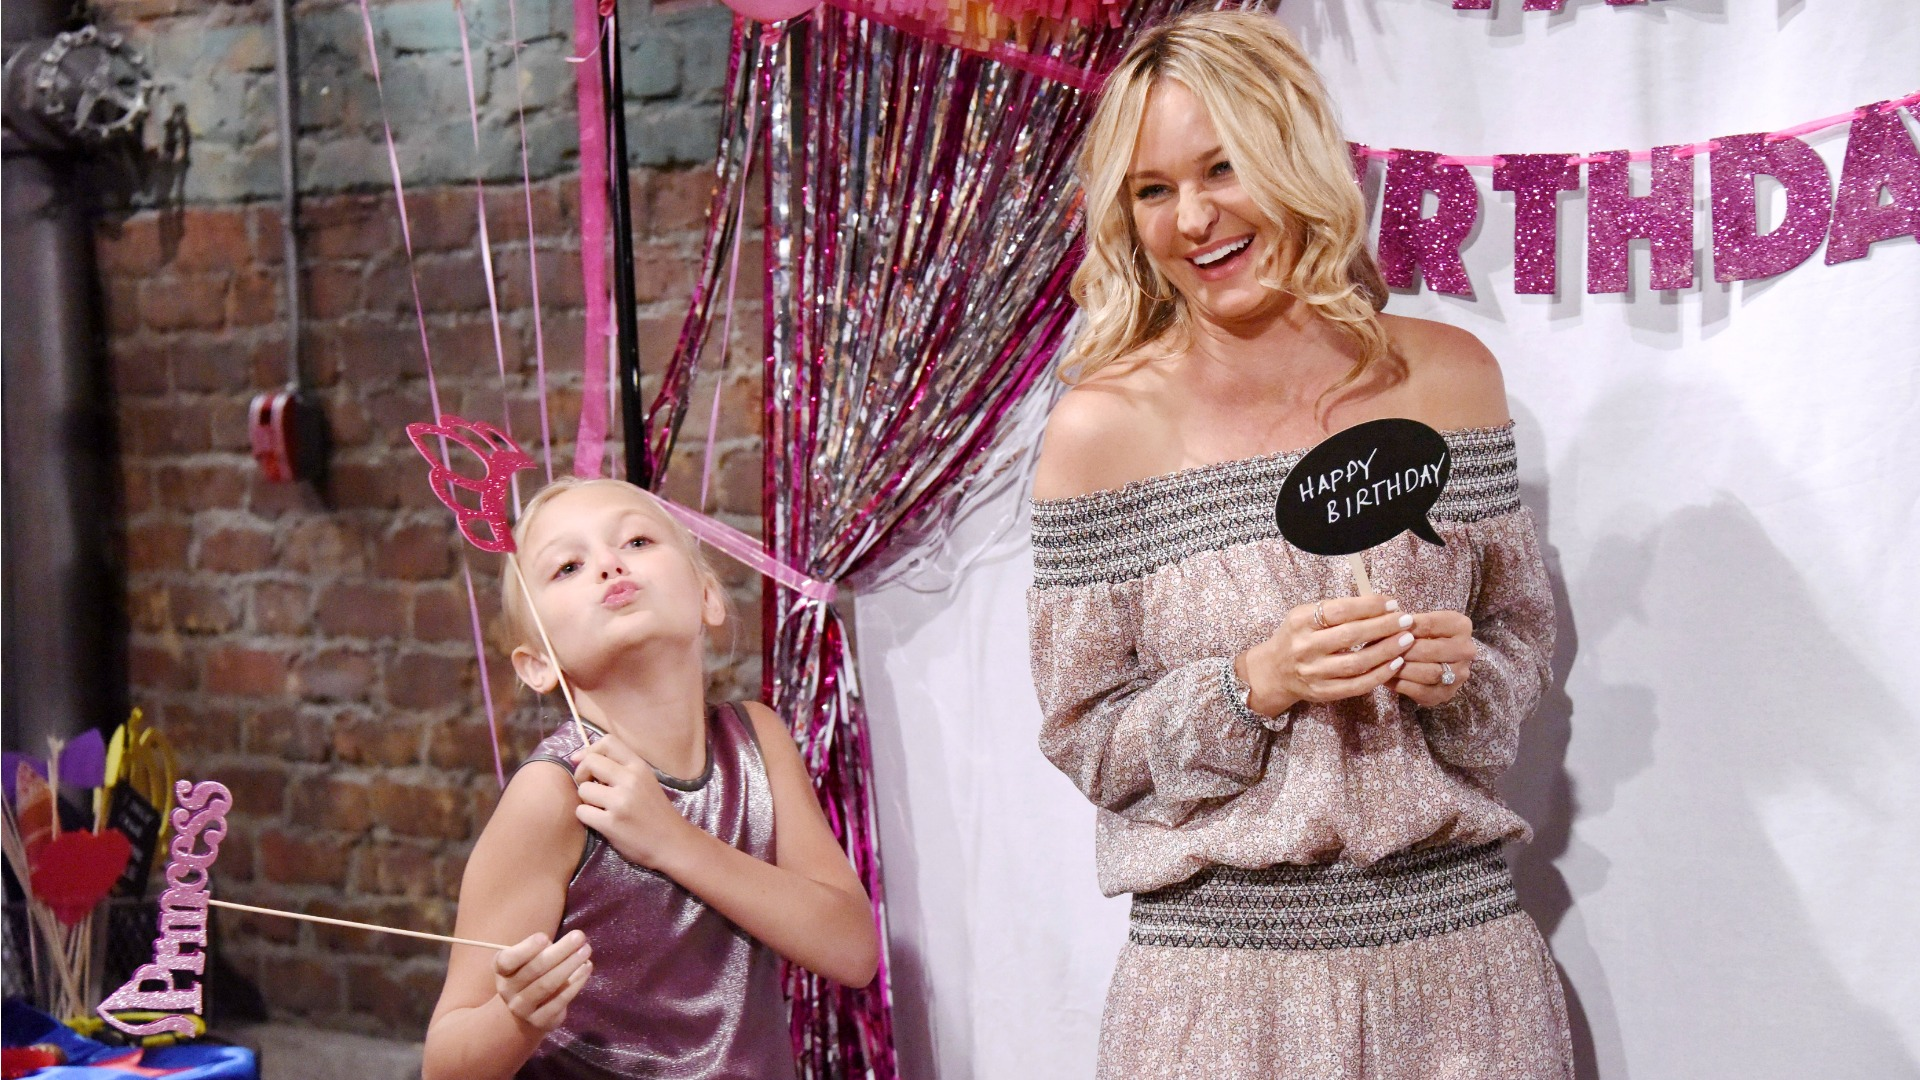 Faith and her mom, Sharon, struck a pose.